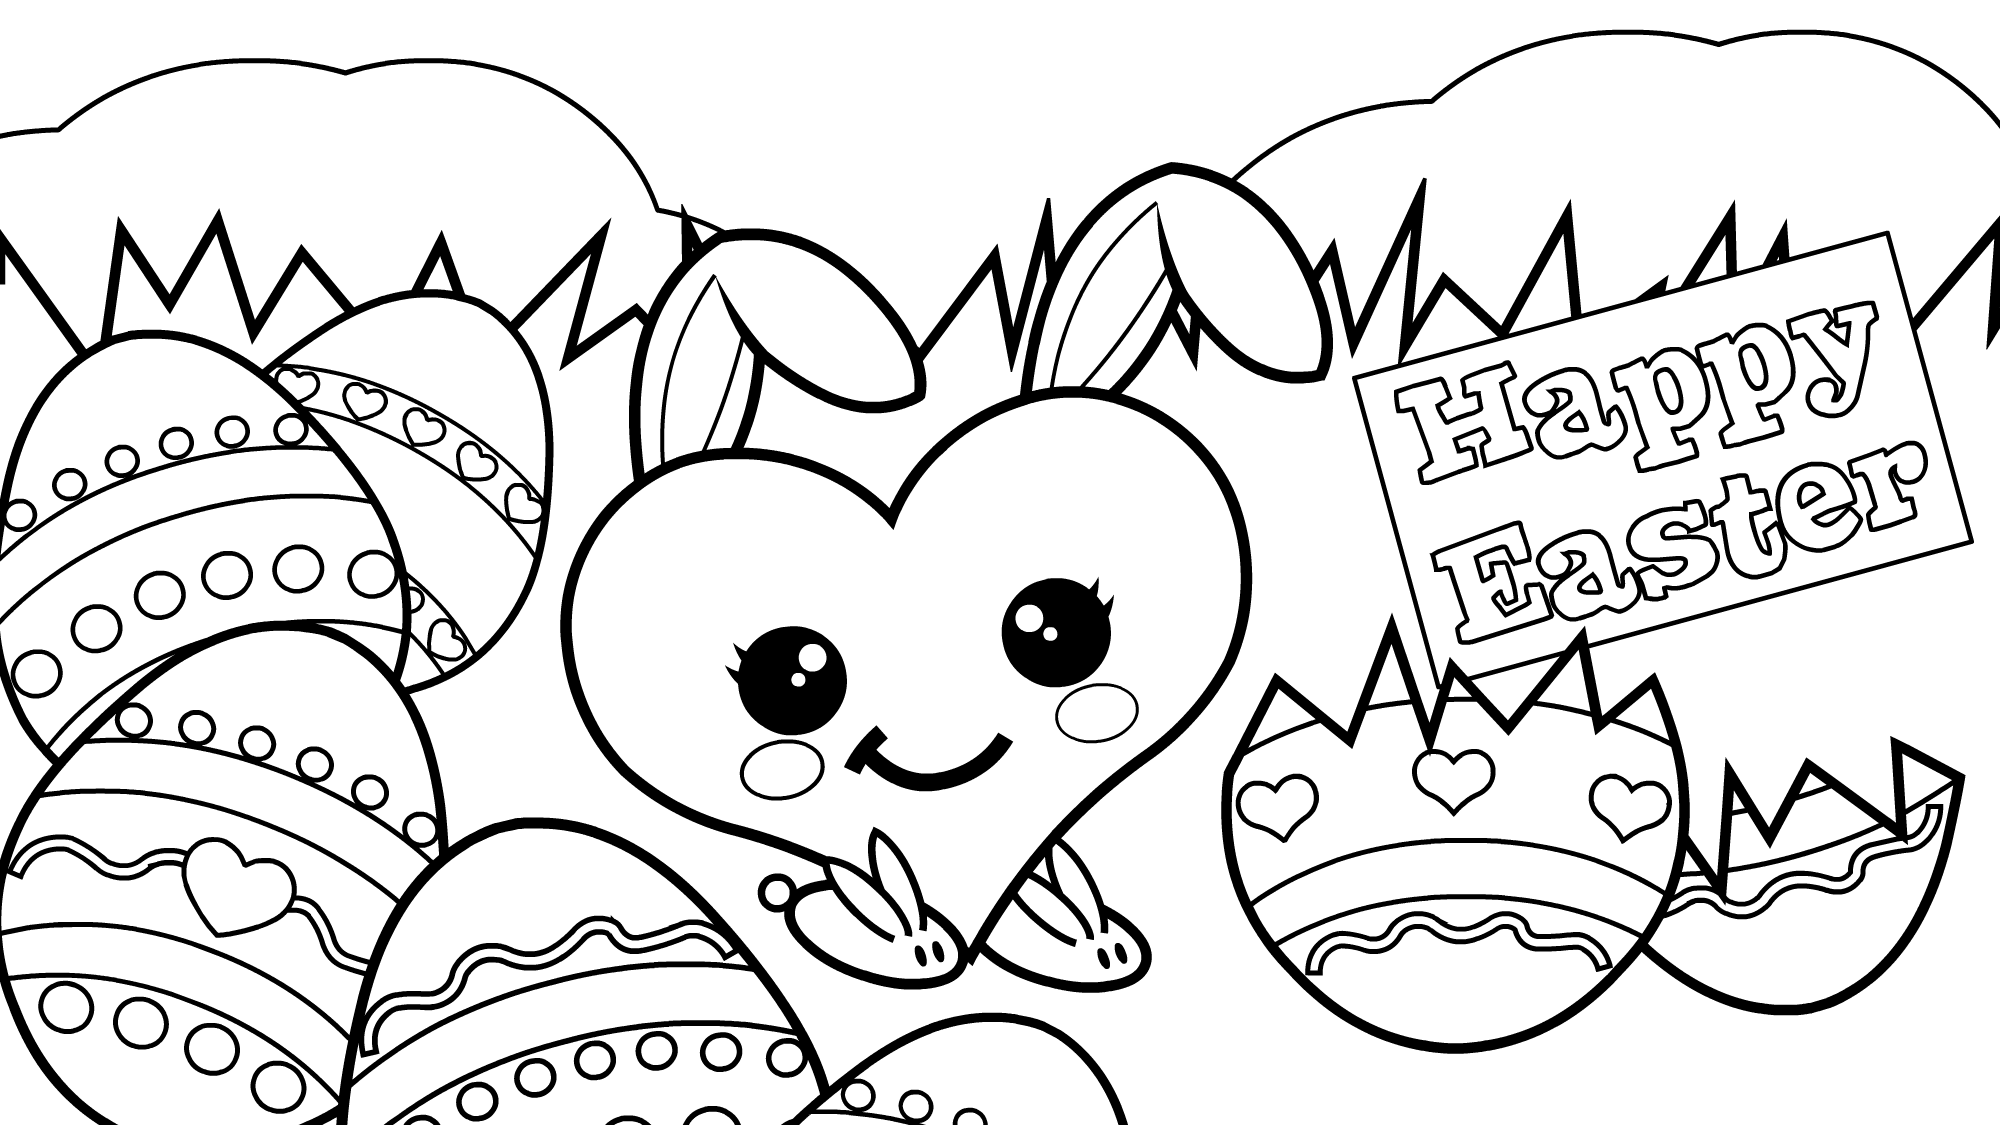 Easter Egg Coloring Pages Crayola Best Coloring Pages Bunny Coloring Pages Easter Coloring Pages Easter Coloring Sheets [ png ]